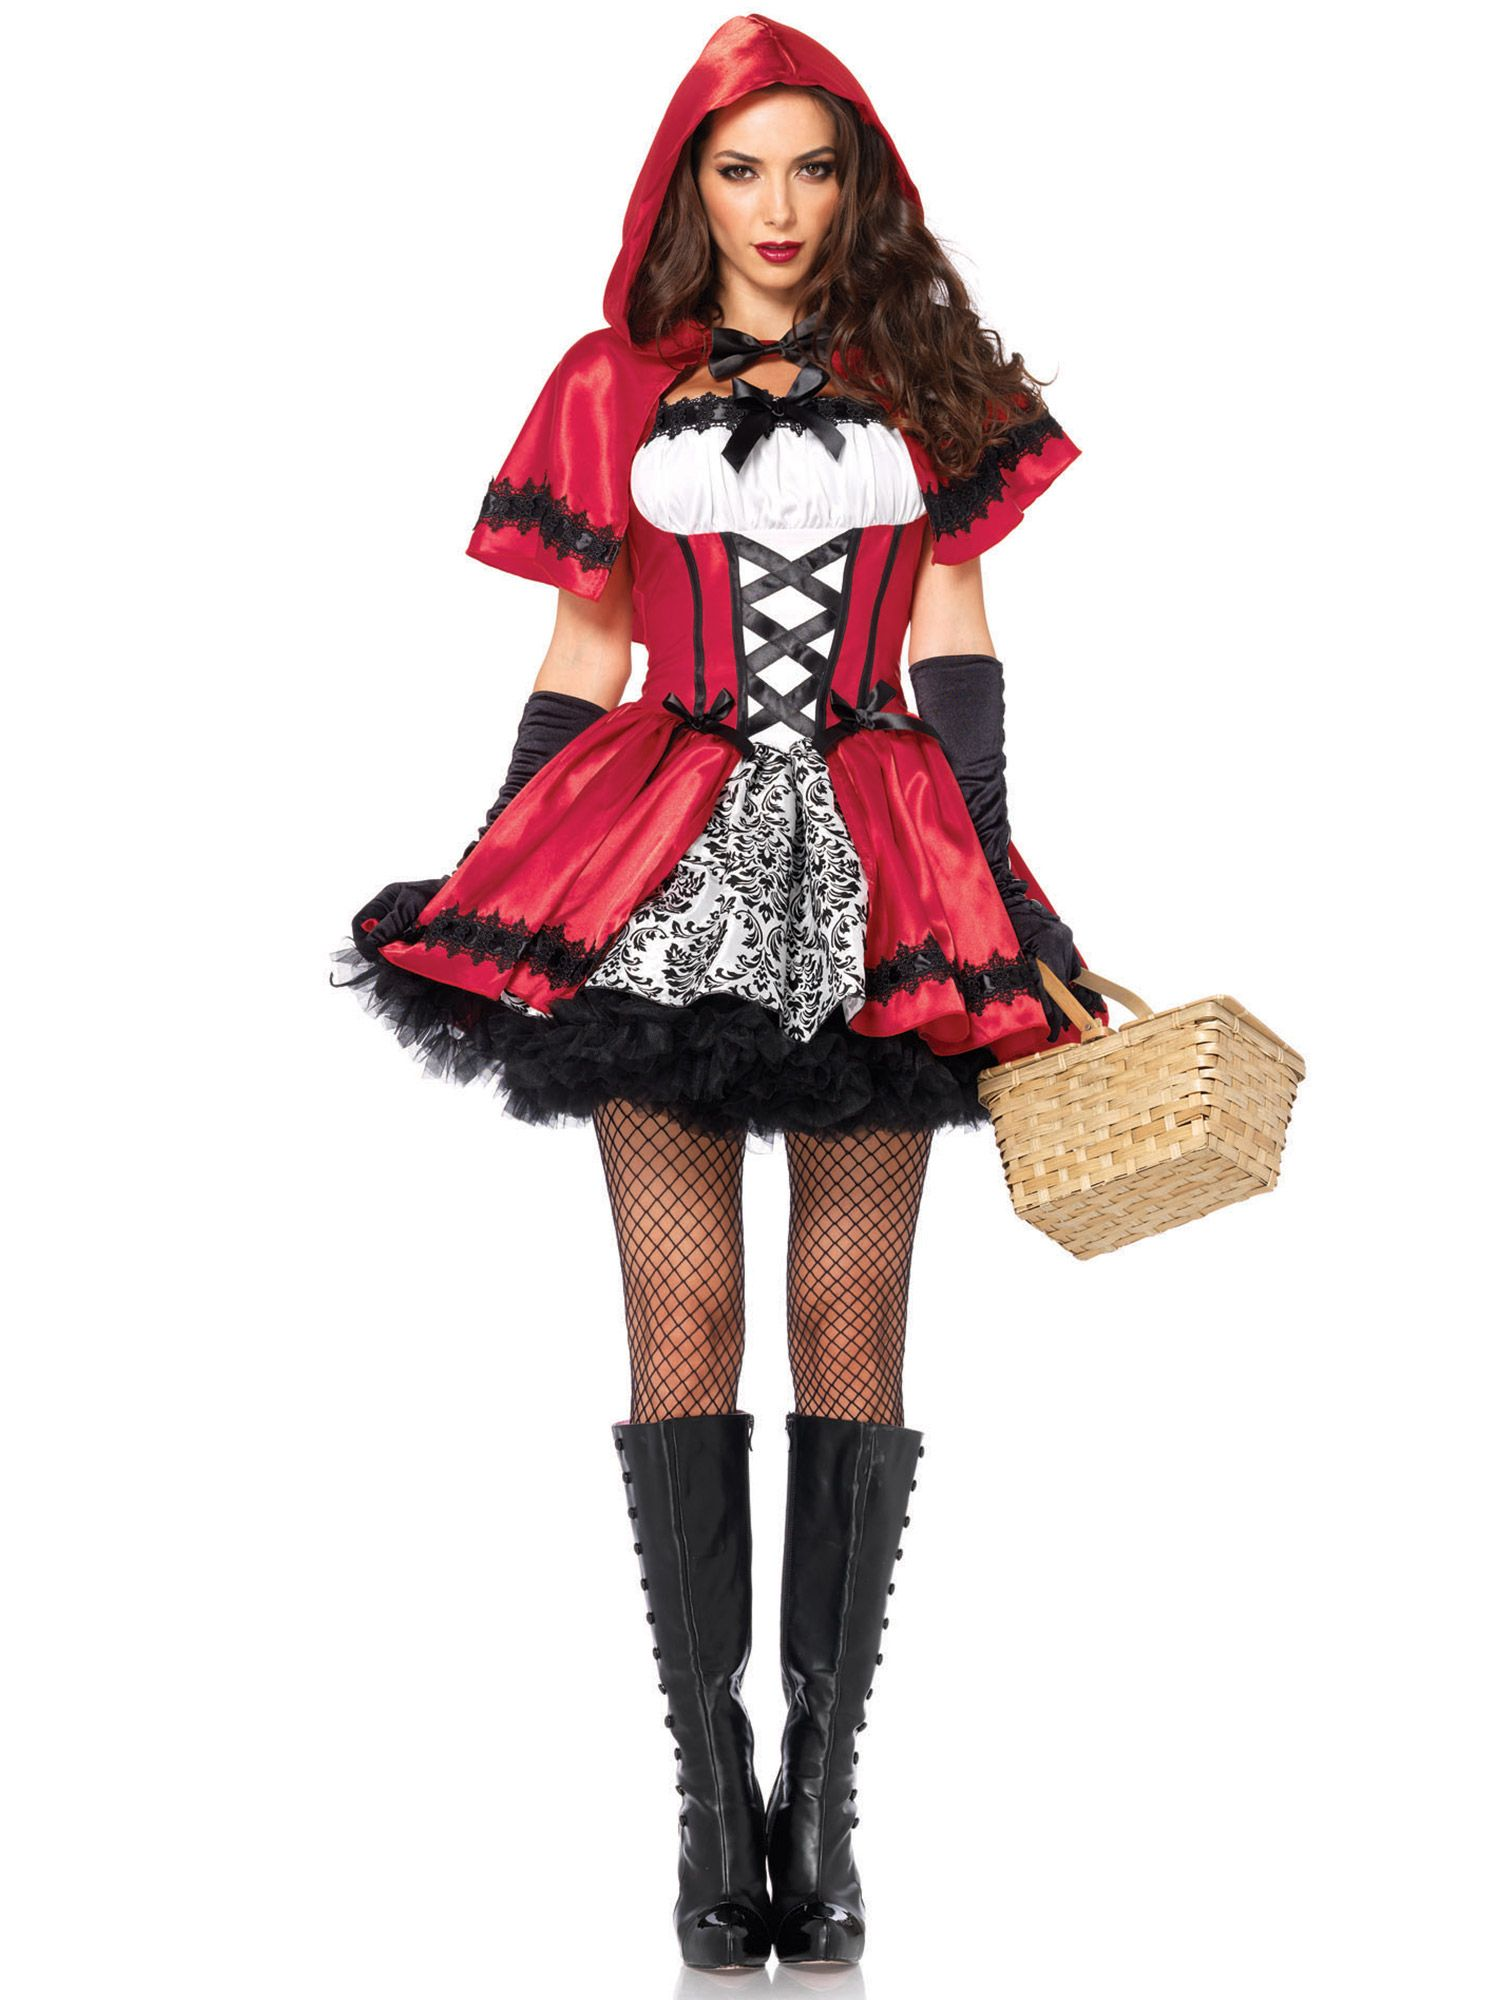 Charades Costumes Sexy Gothic Red Riding Hood Costume